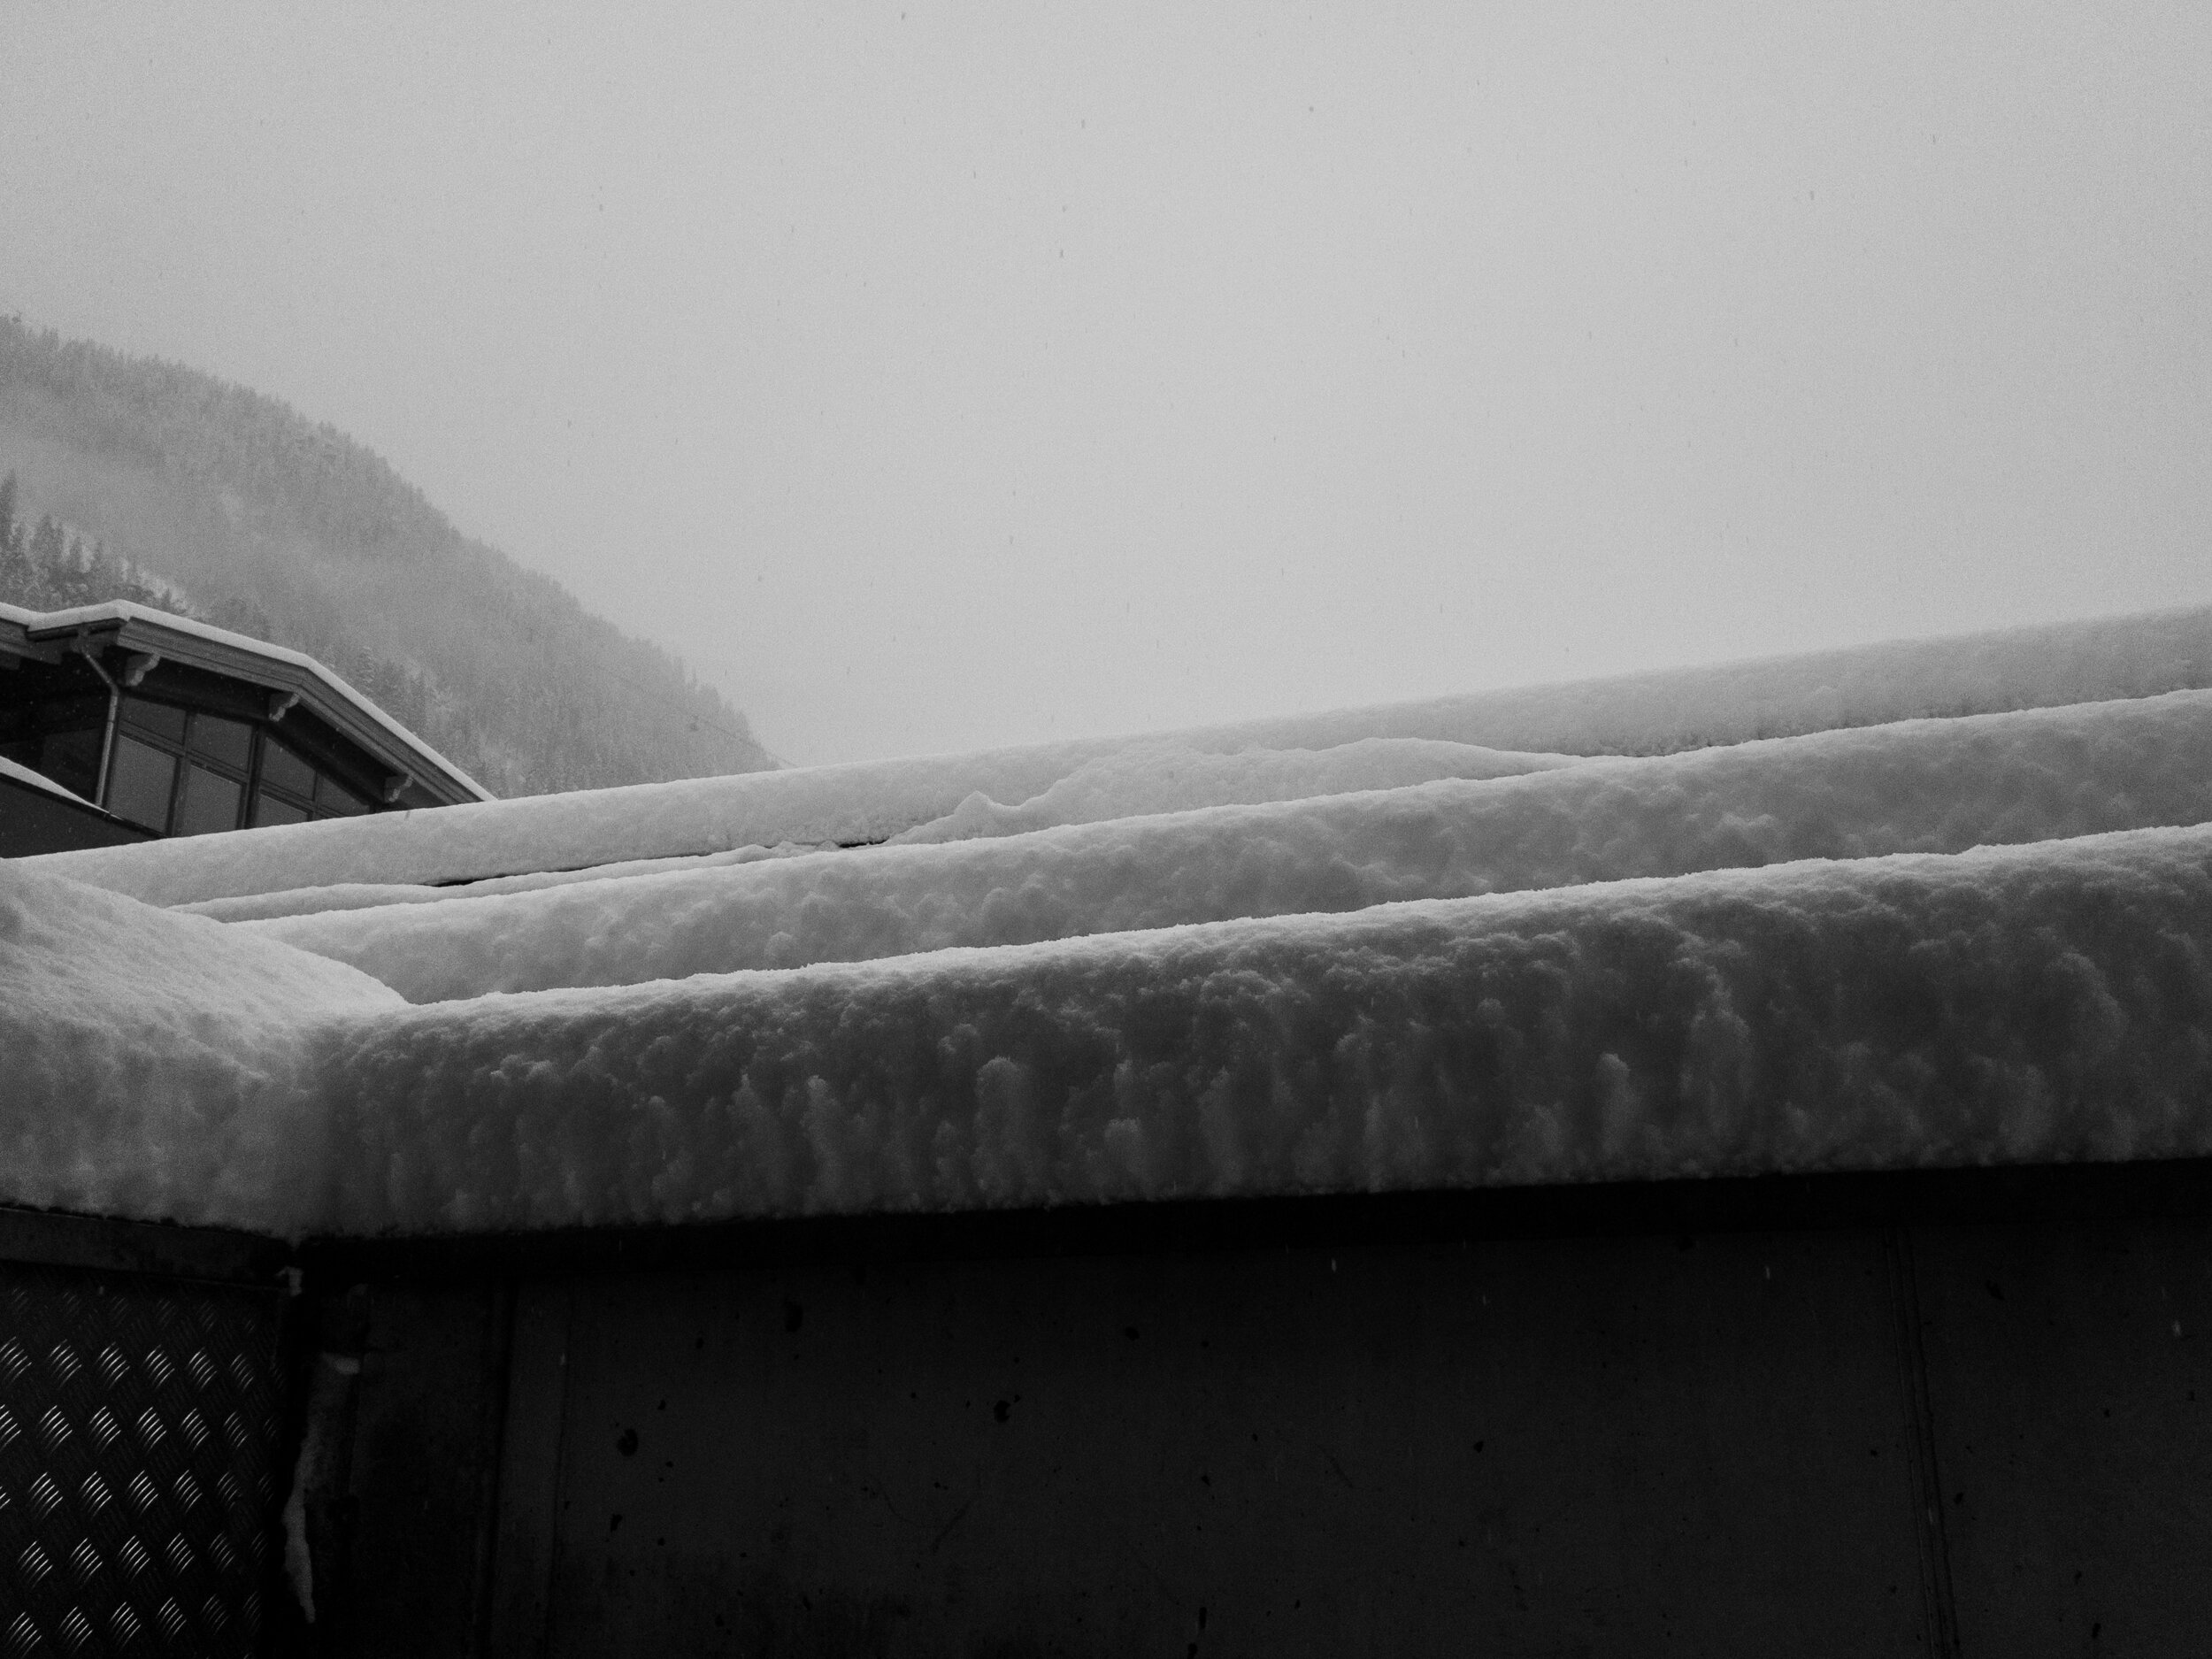 snow on a cold tin roof, from some of the epic snowfall we had last winter!